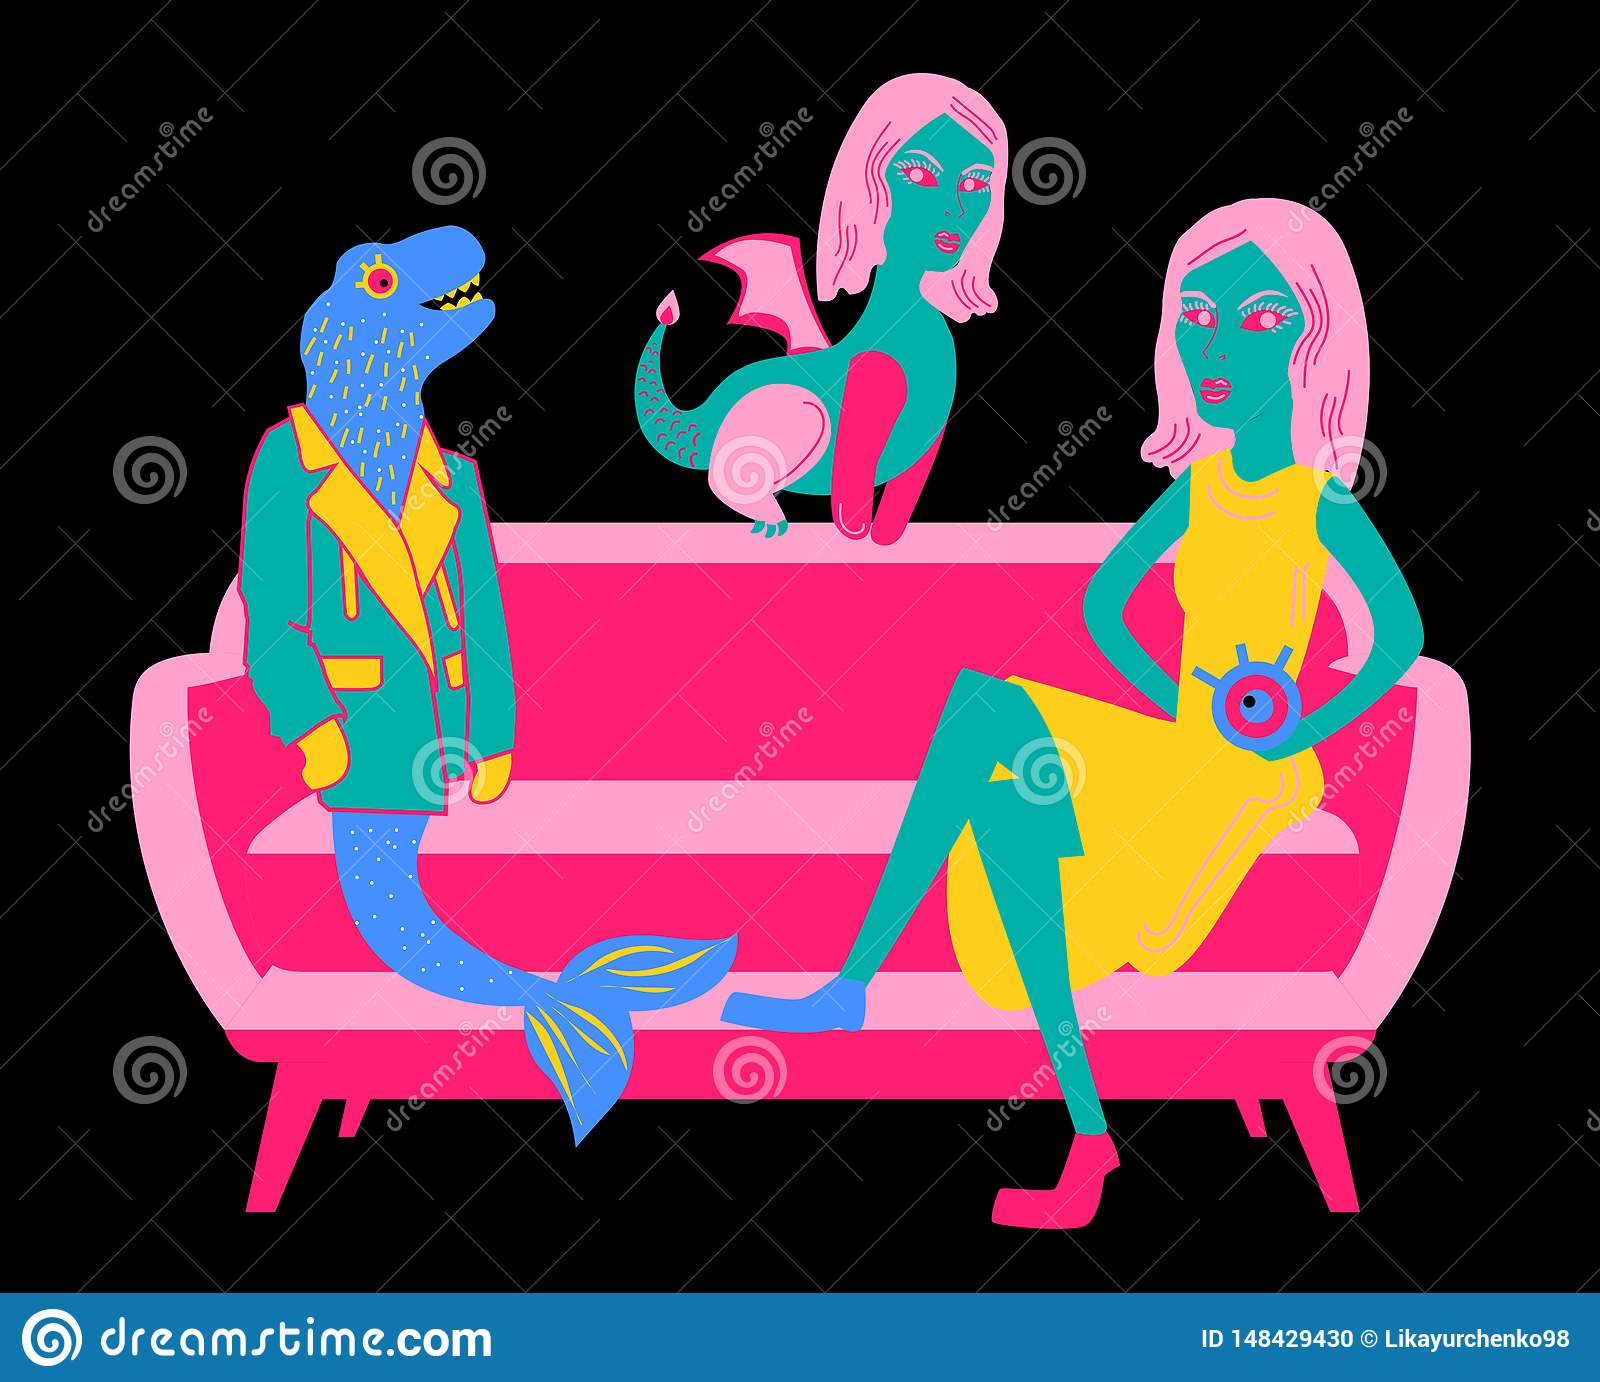 Illustration with a pink and crimson red sofa with a dinosaur in a blue-green jacket and a mermaid`s tail, a girl with a yellow sk